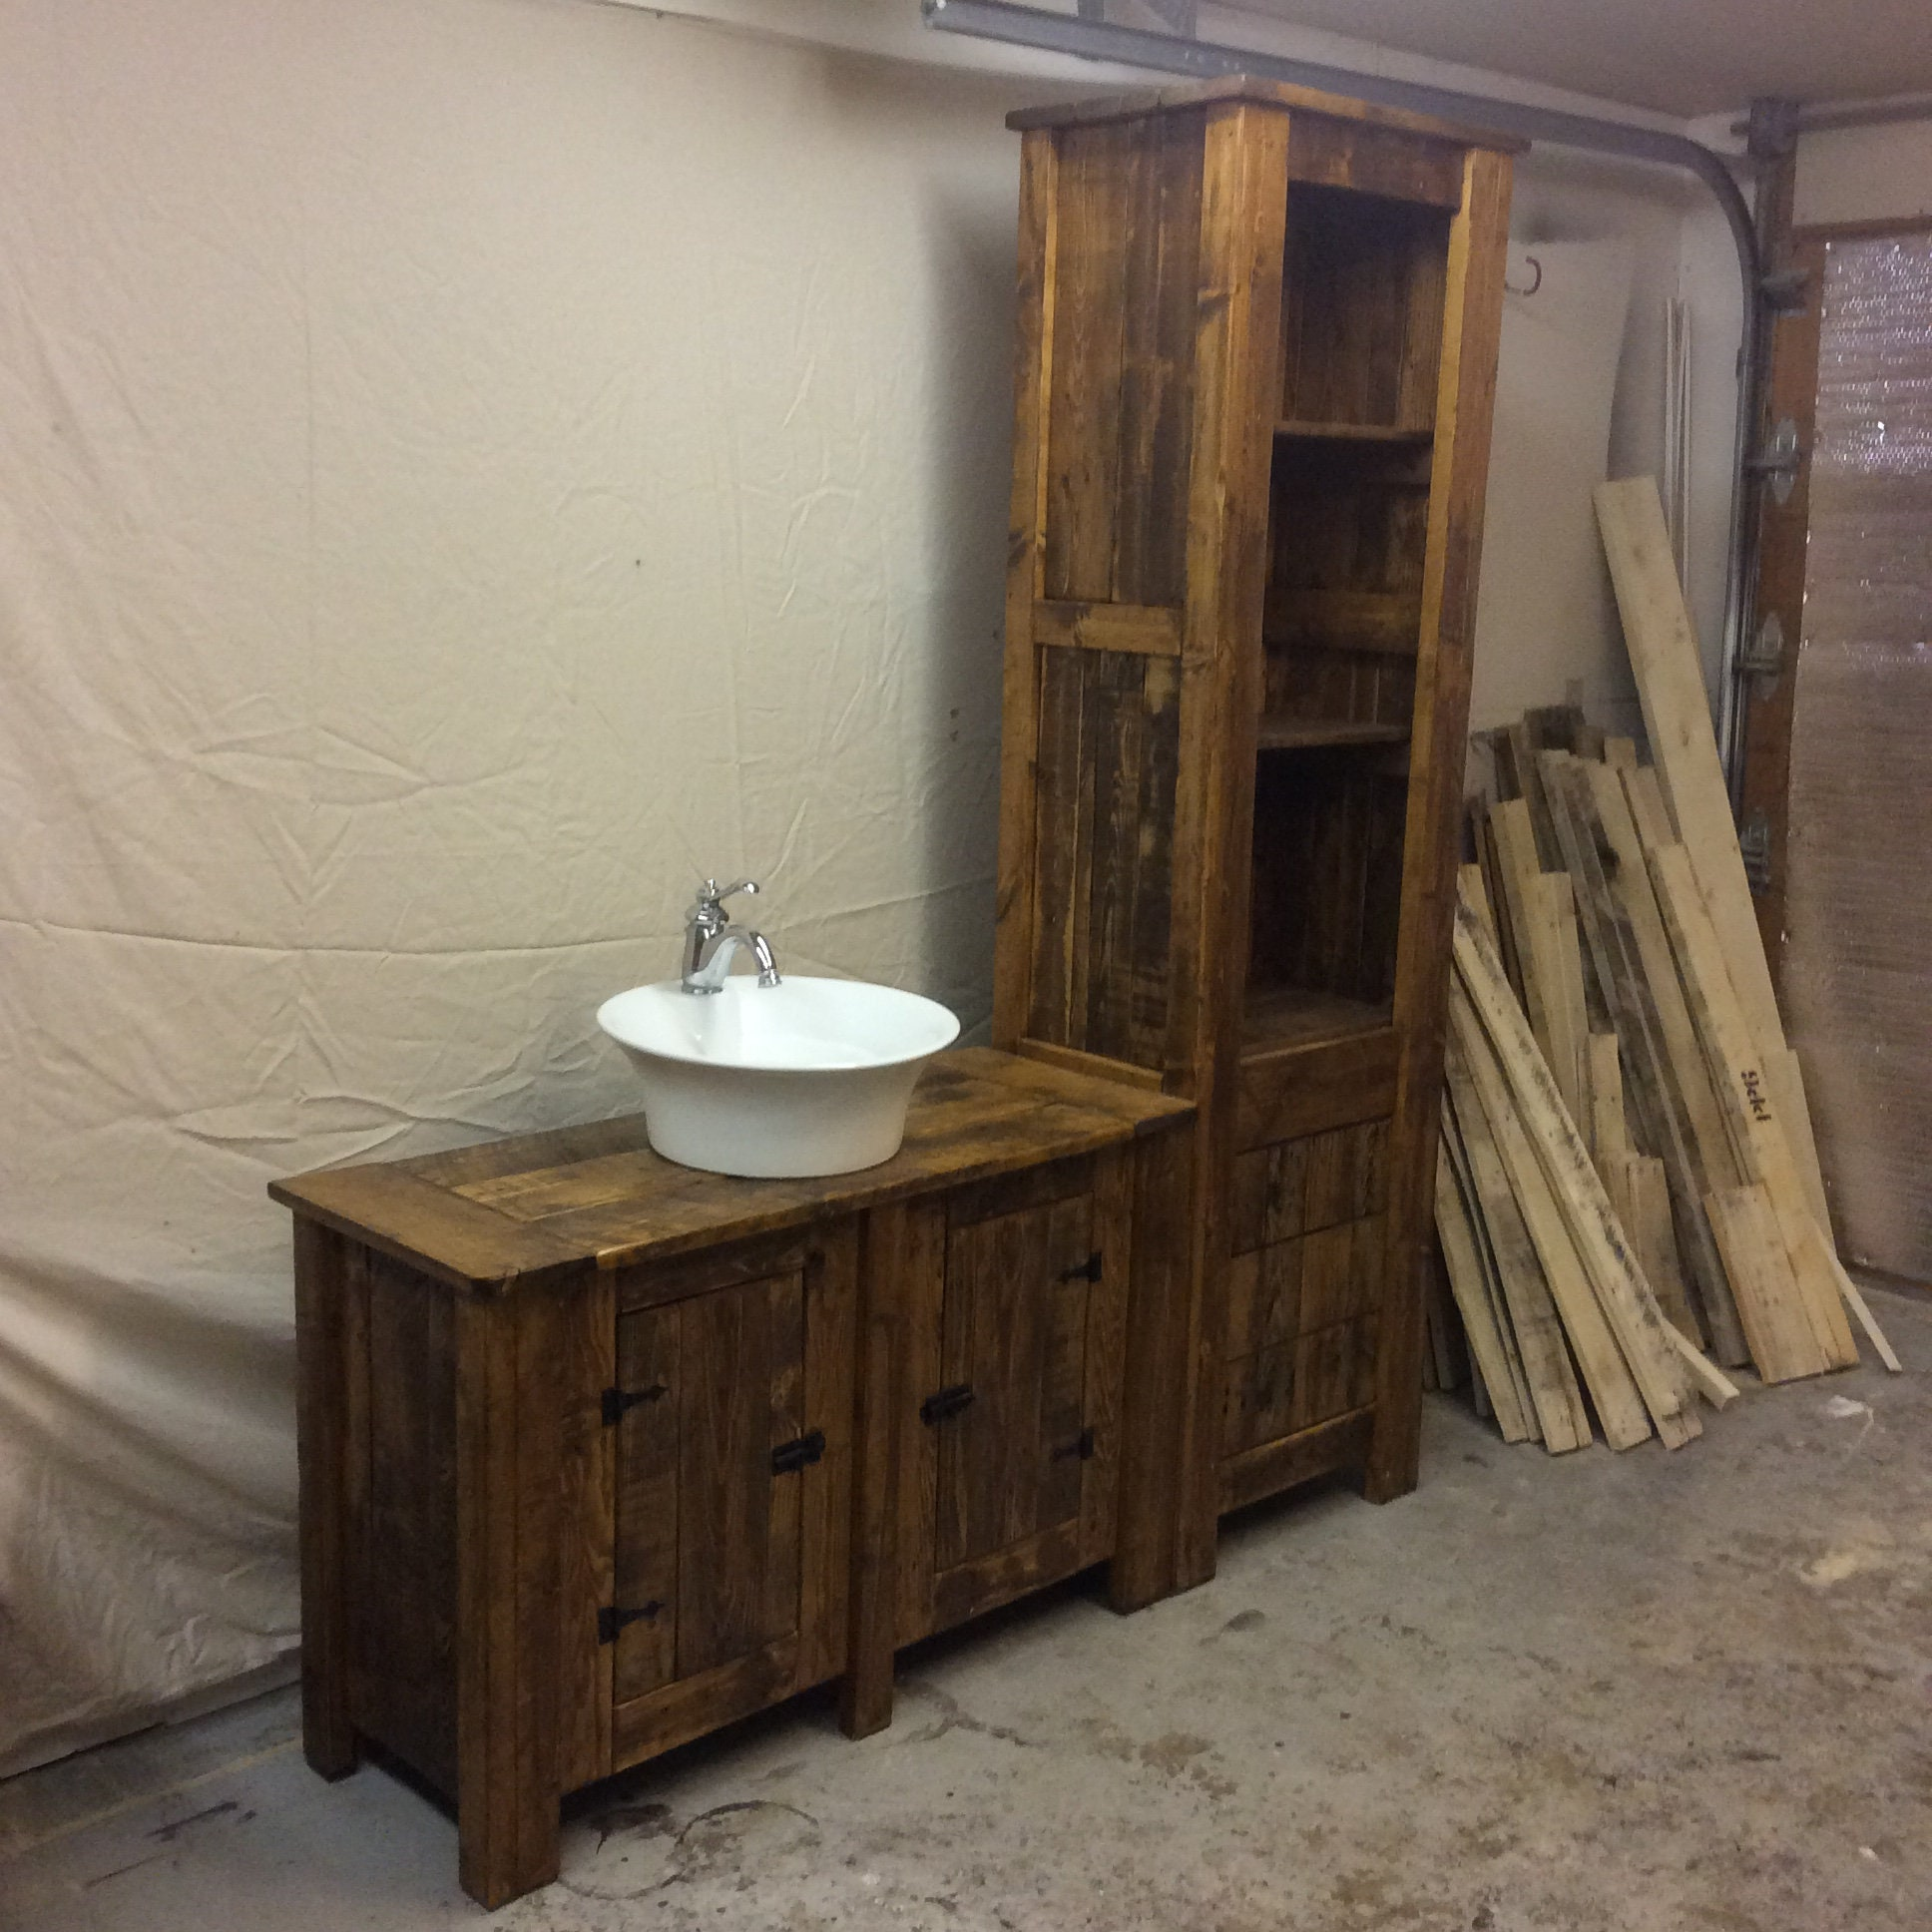 Rustic Reclaimed Wood Bathroom Vanity and Storage Cupboard